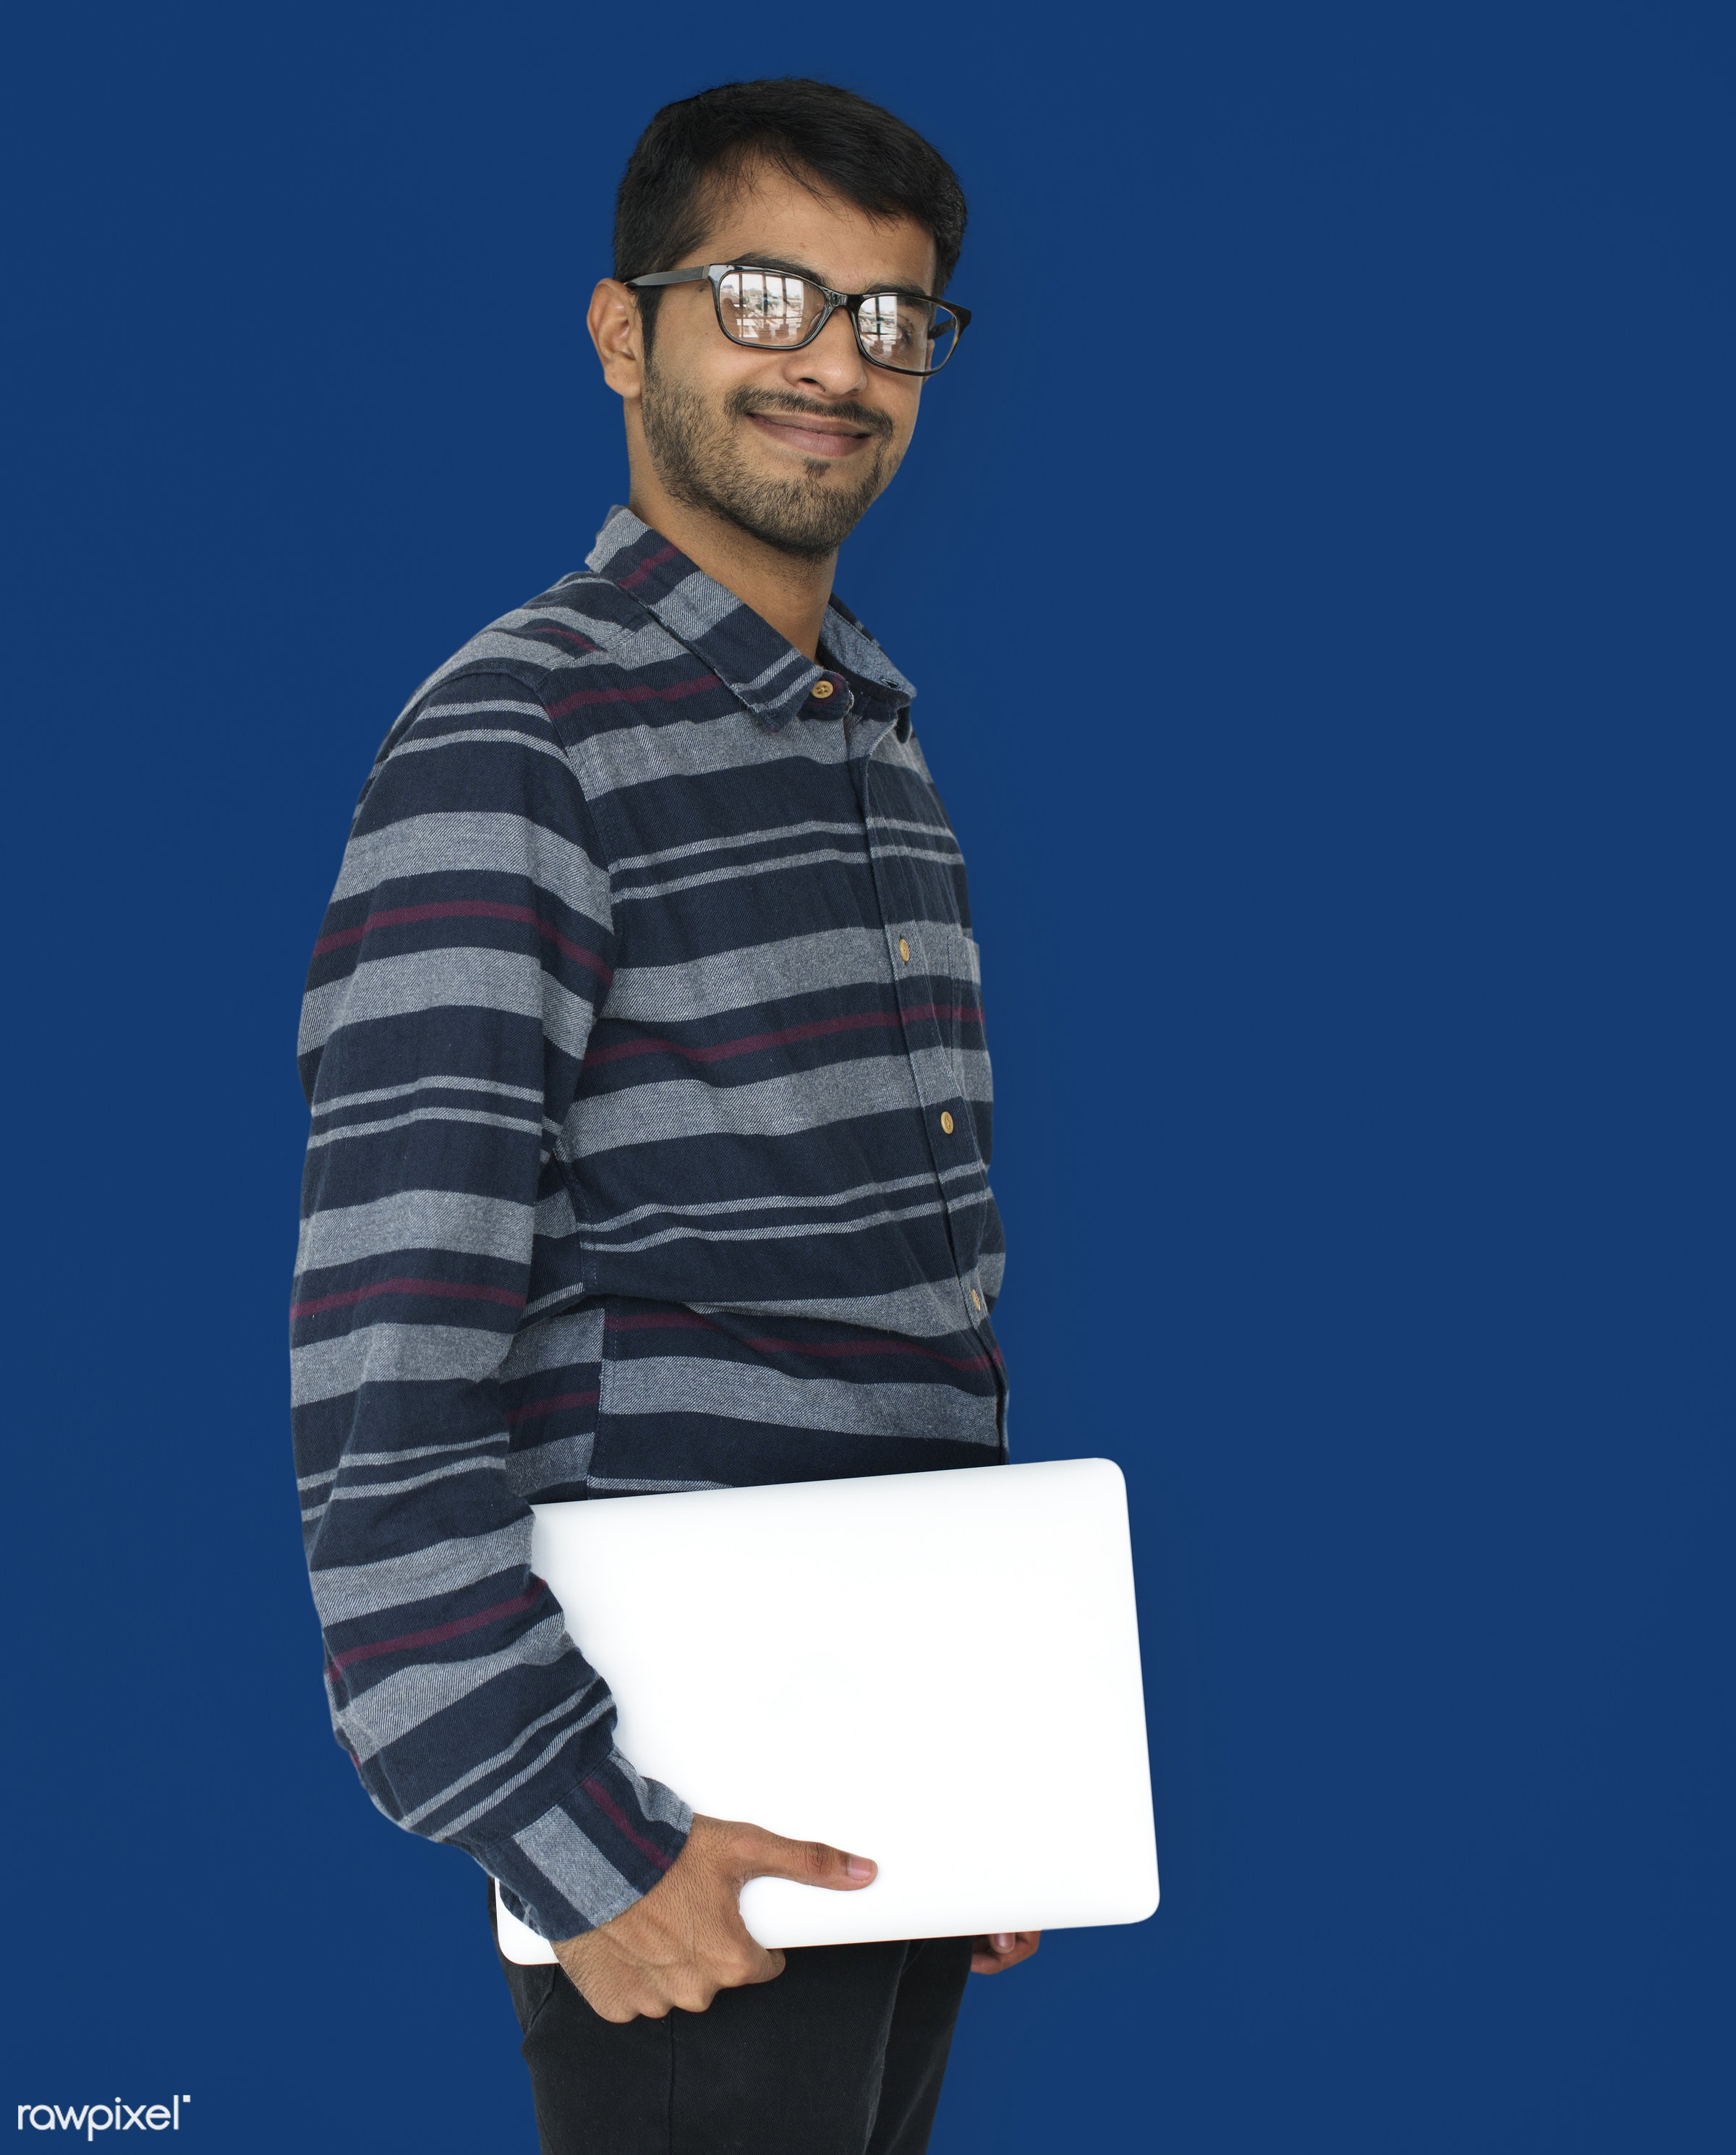 expression, studio, model, person, single, technology, holding, people, digital, asian, laptop, man, smiling, isolated,...